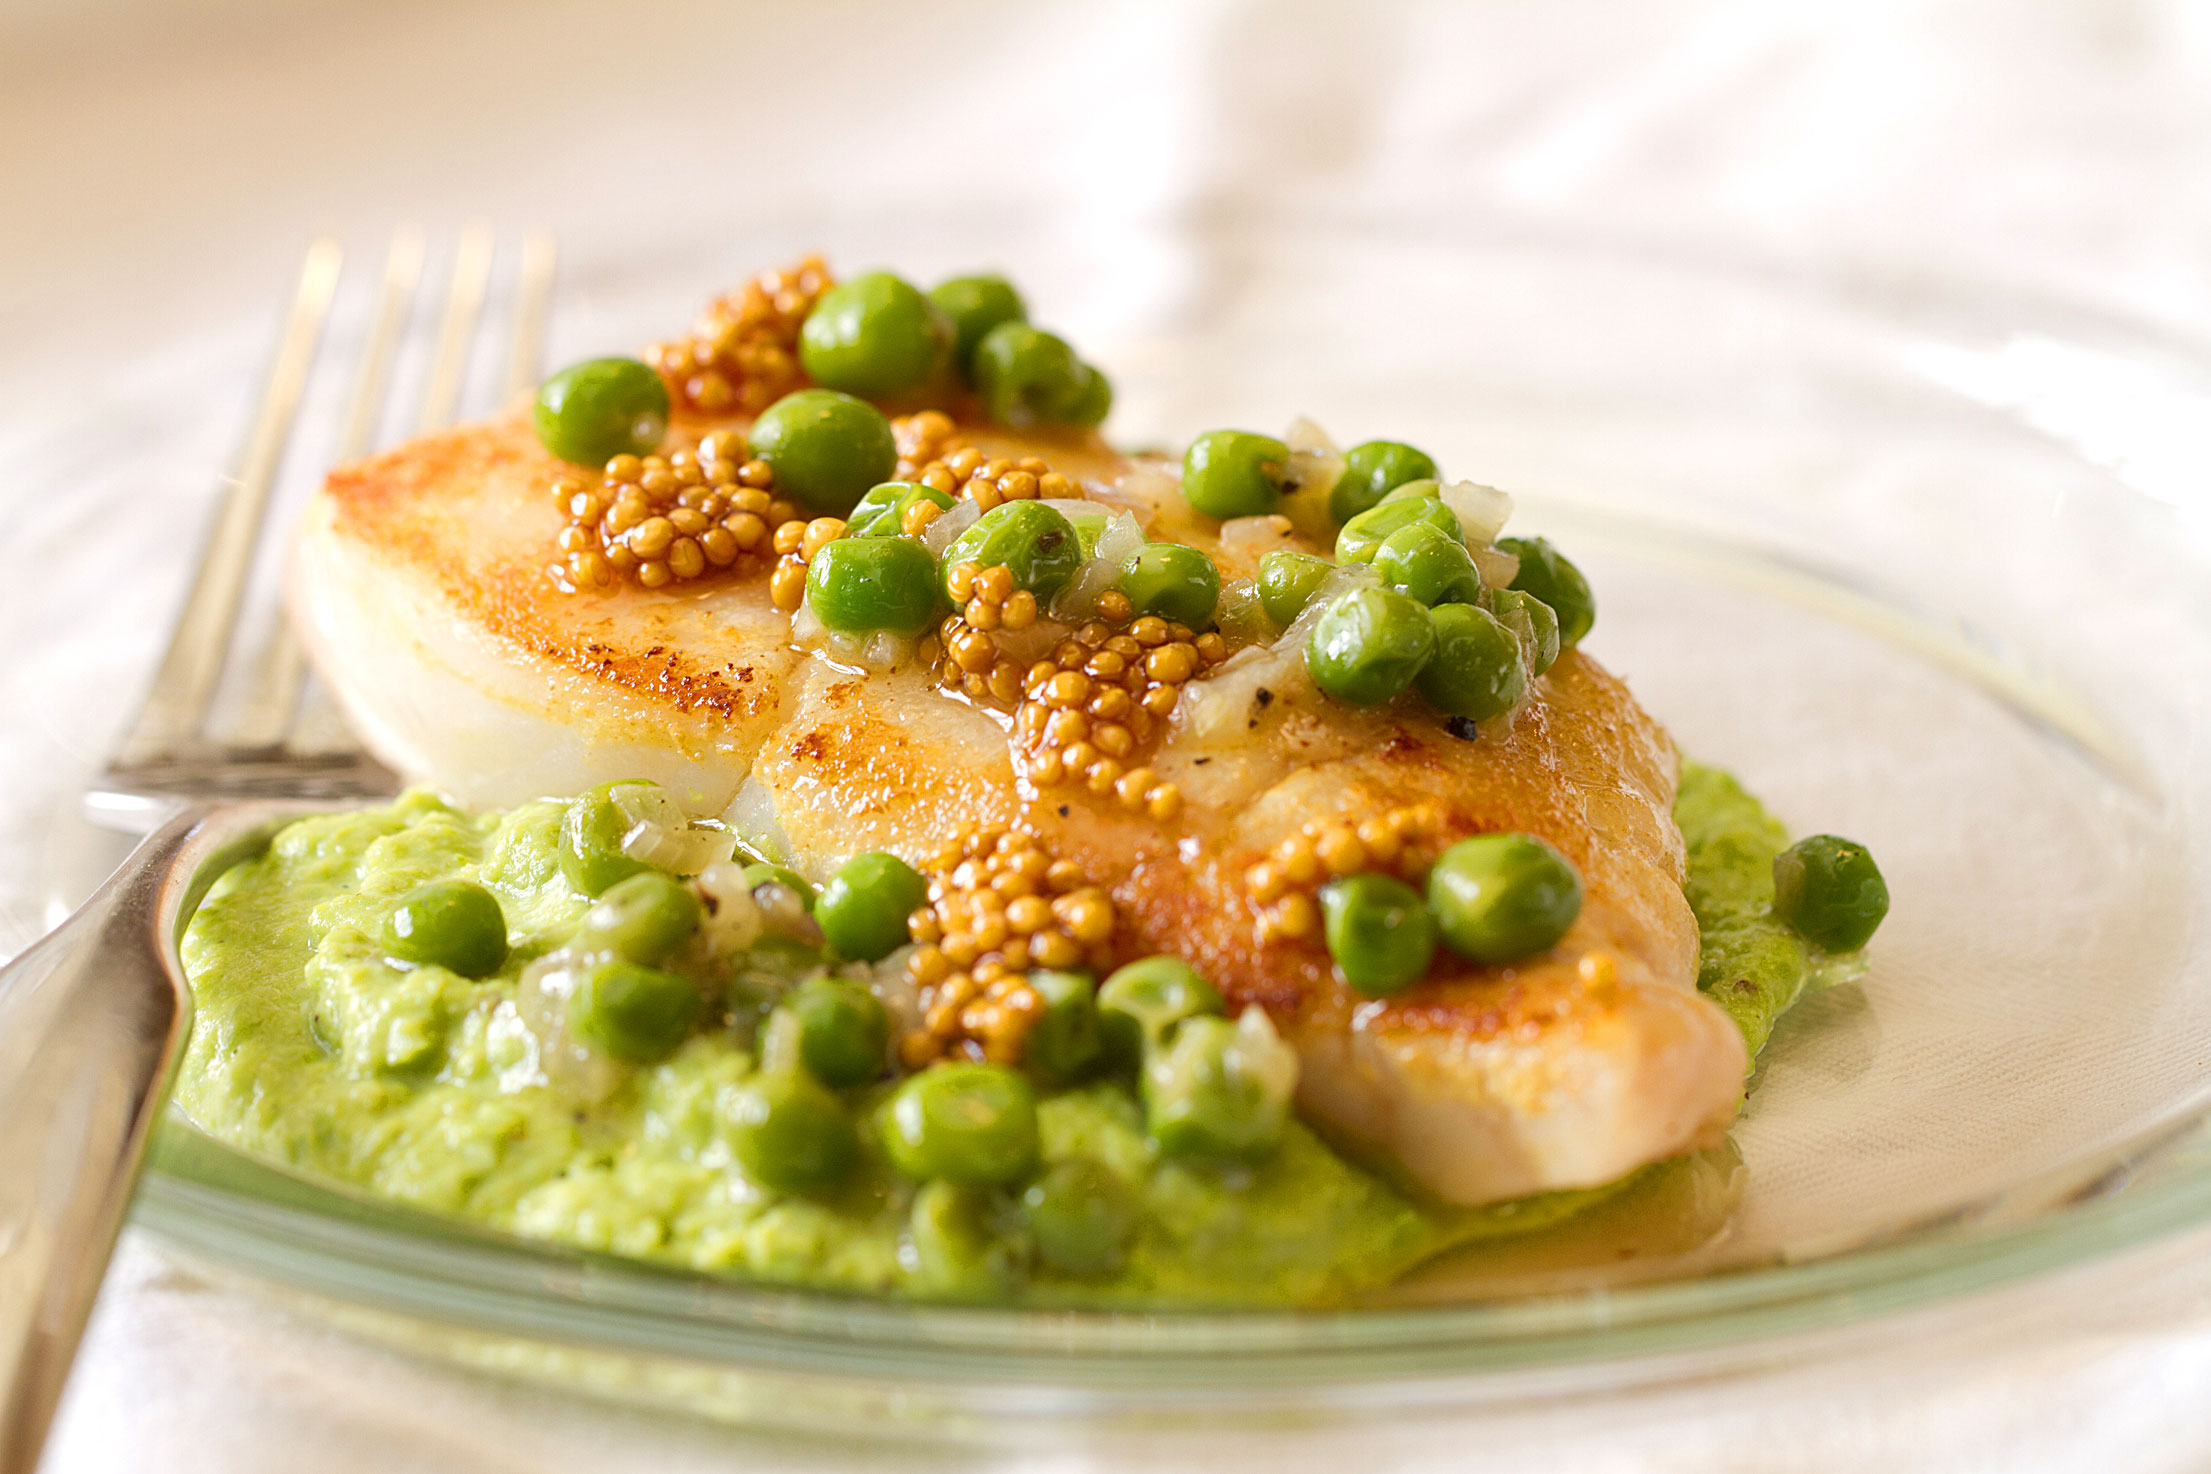 Mustard-Brushed Halibut with Pea Puree and Pickled Mustard Seeds